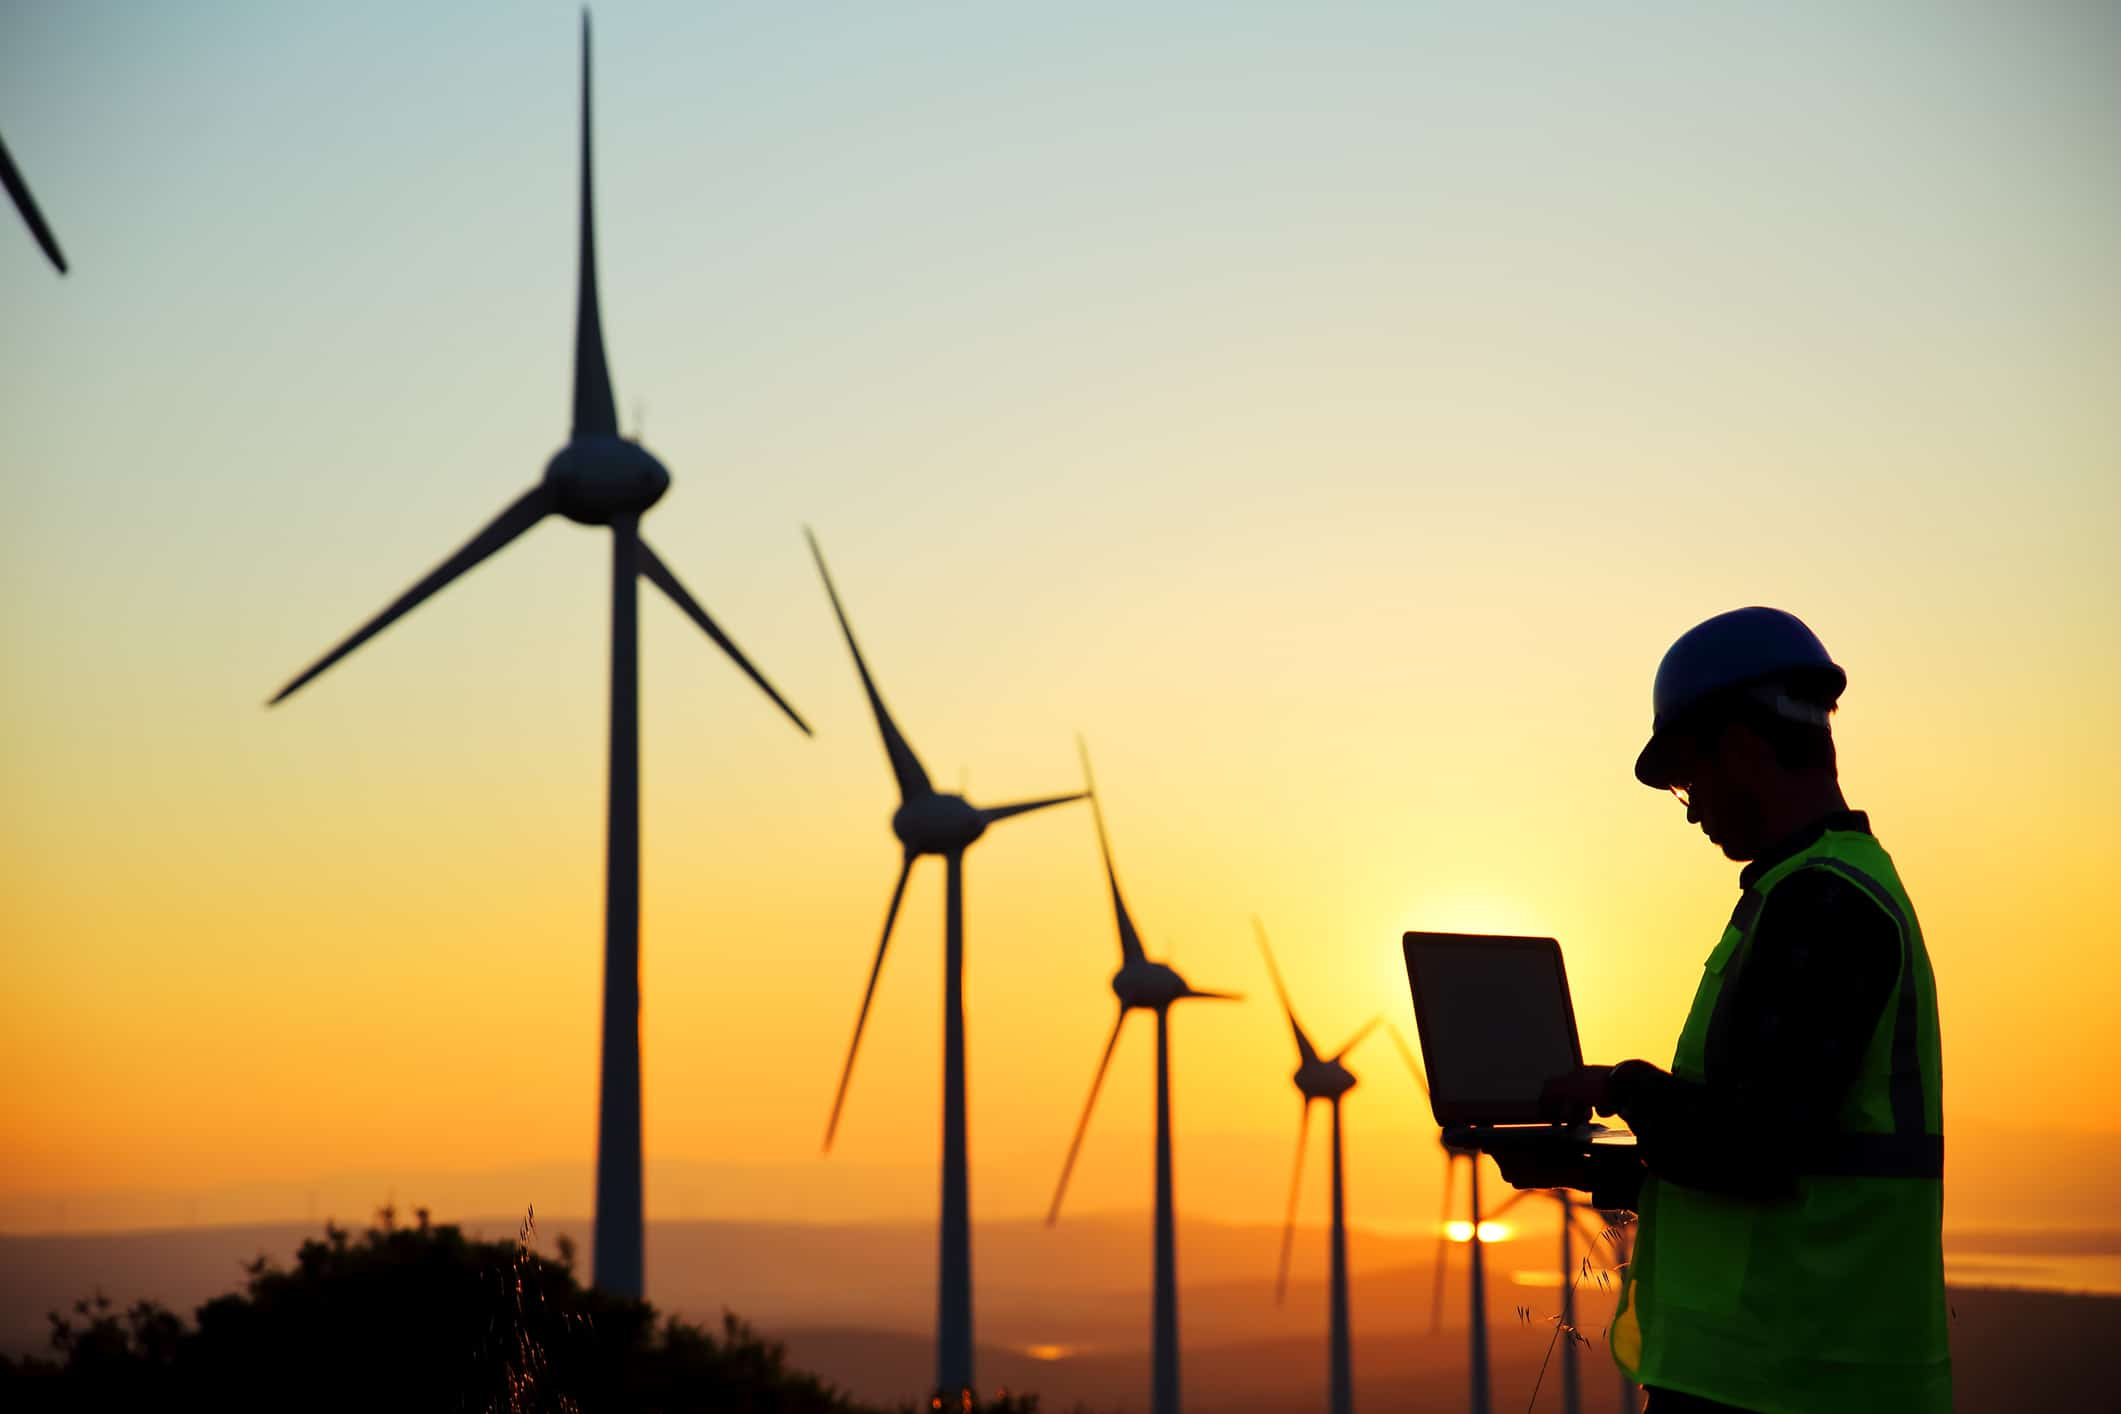 Power Price Volatility to Rise in 2020 as Renewables Gain Market Share